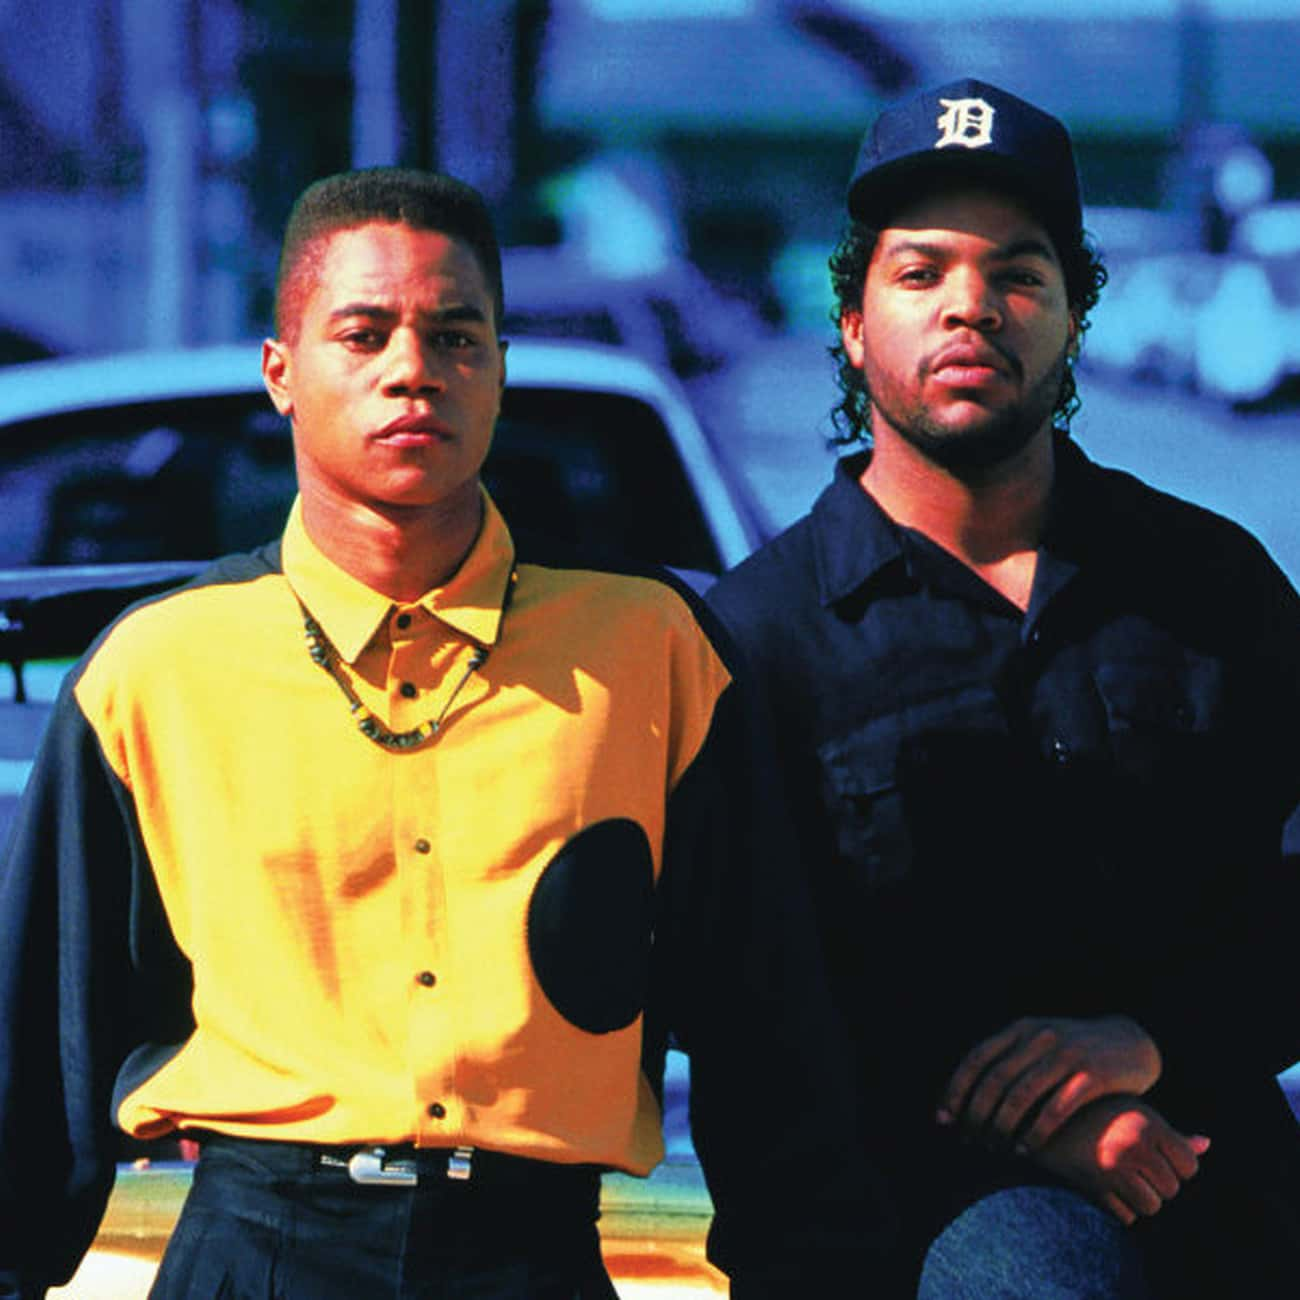 Boyz n the Hood is listed (or ranked) 2 on the list The '90s Movies That Stuck with You the Most